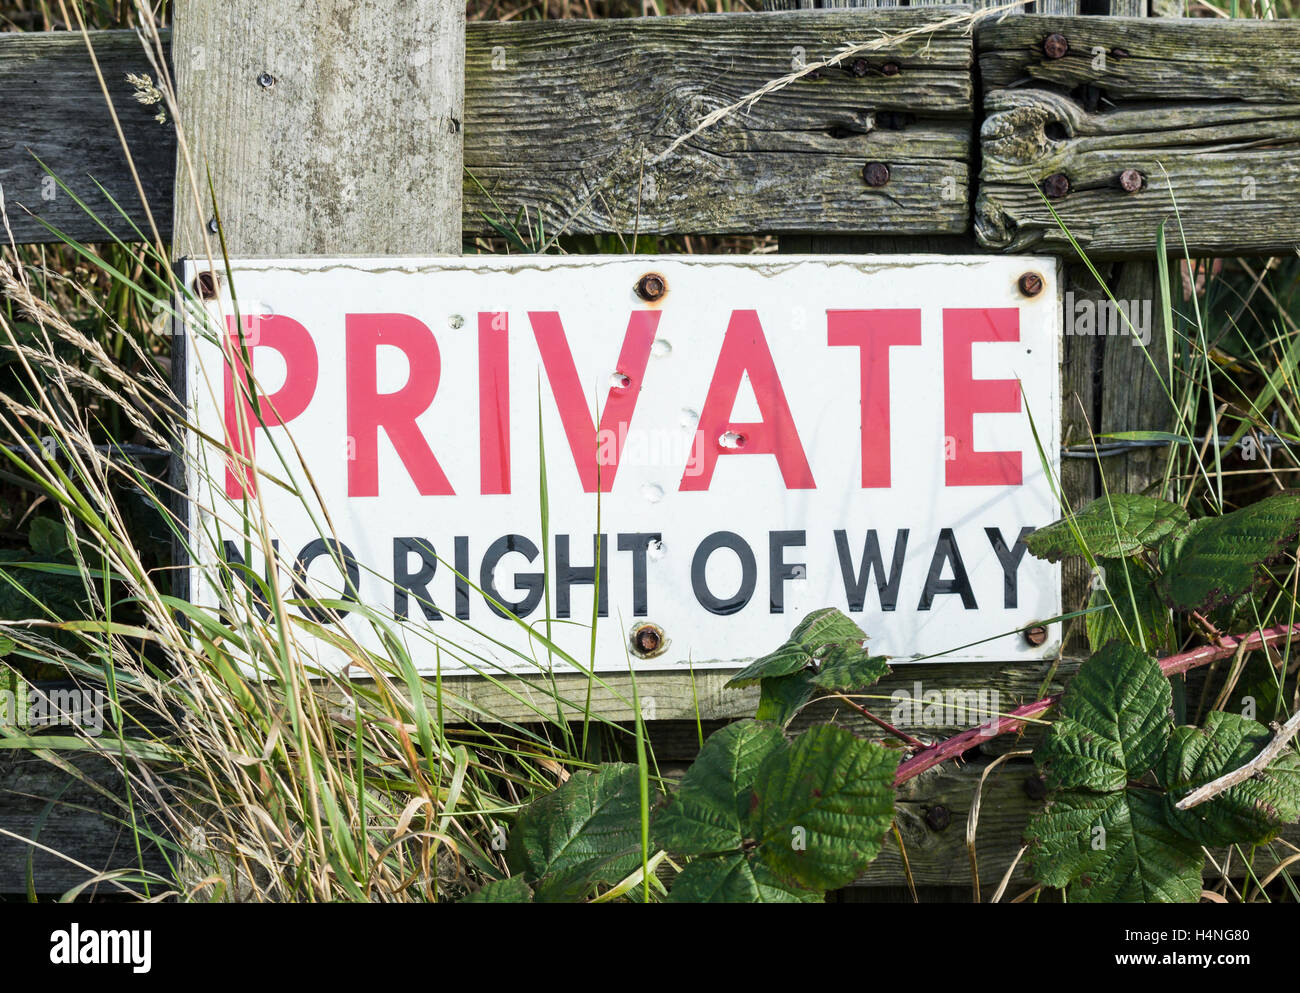 Private no right of way sign in countryside. England. UK - Stock Image